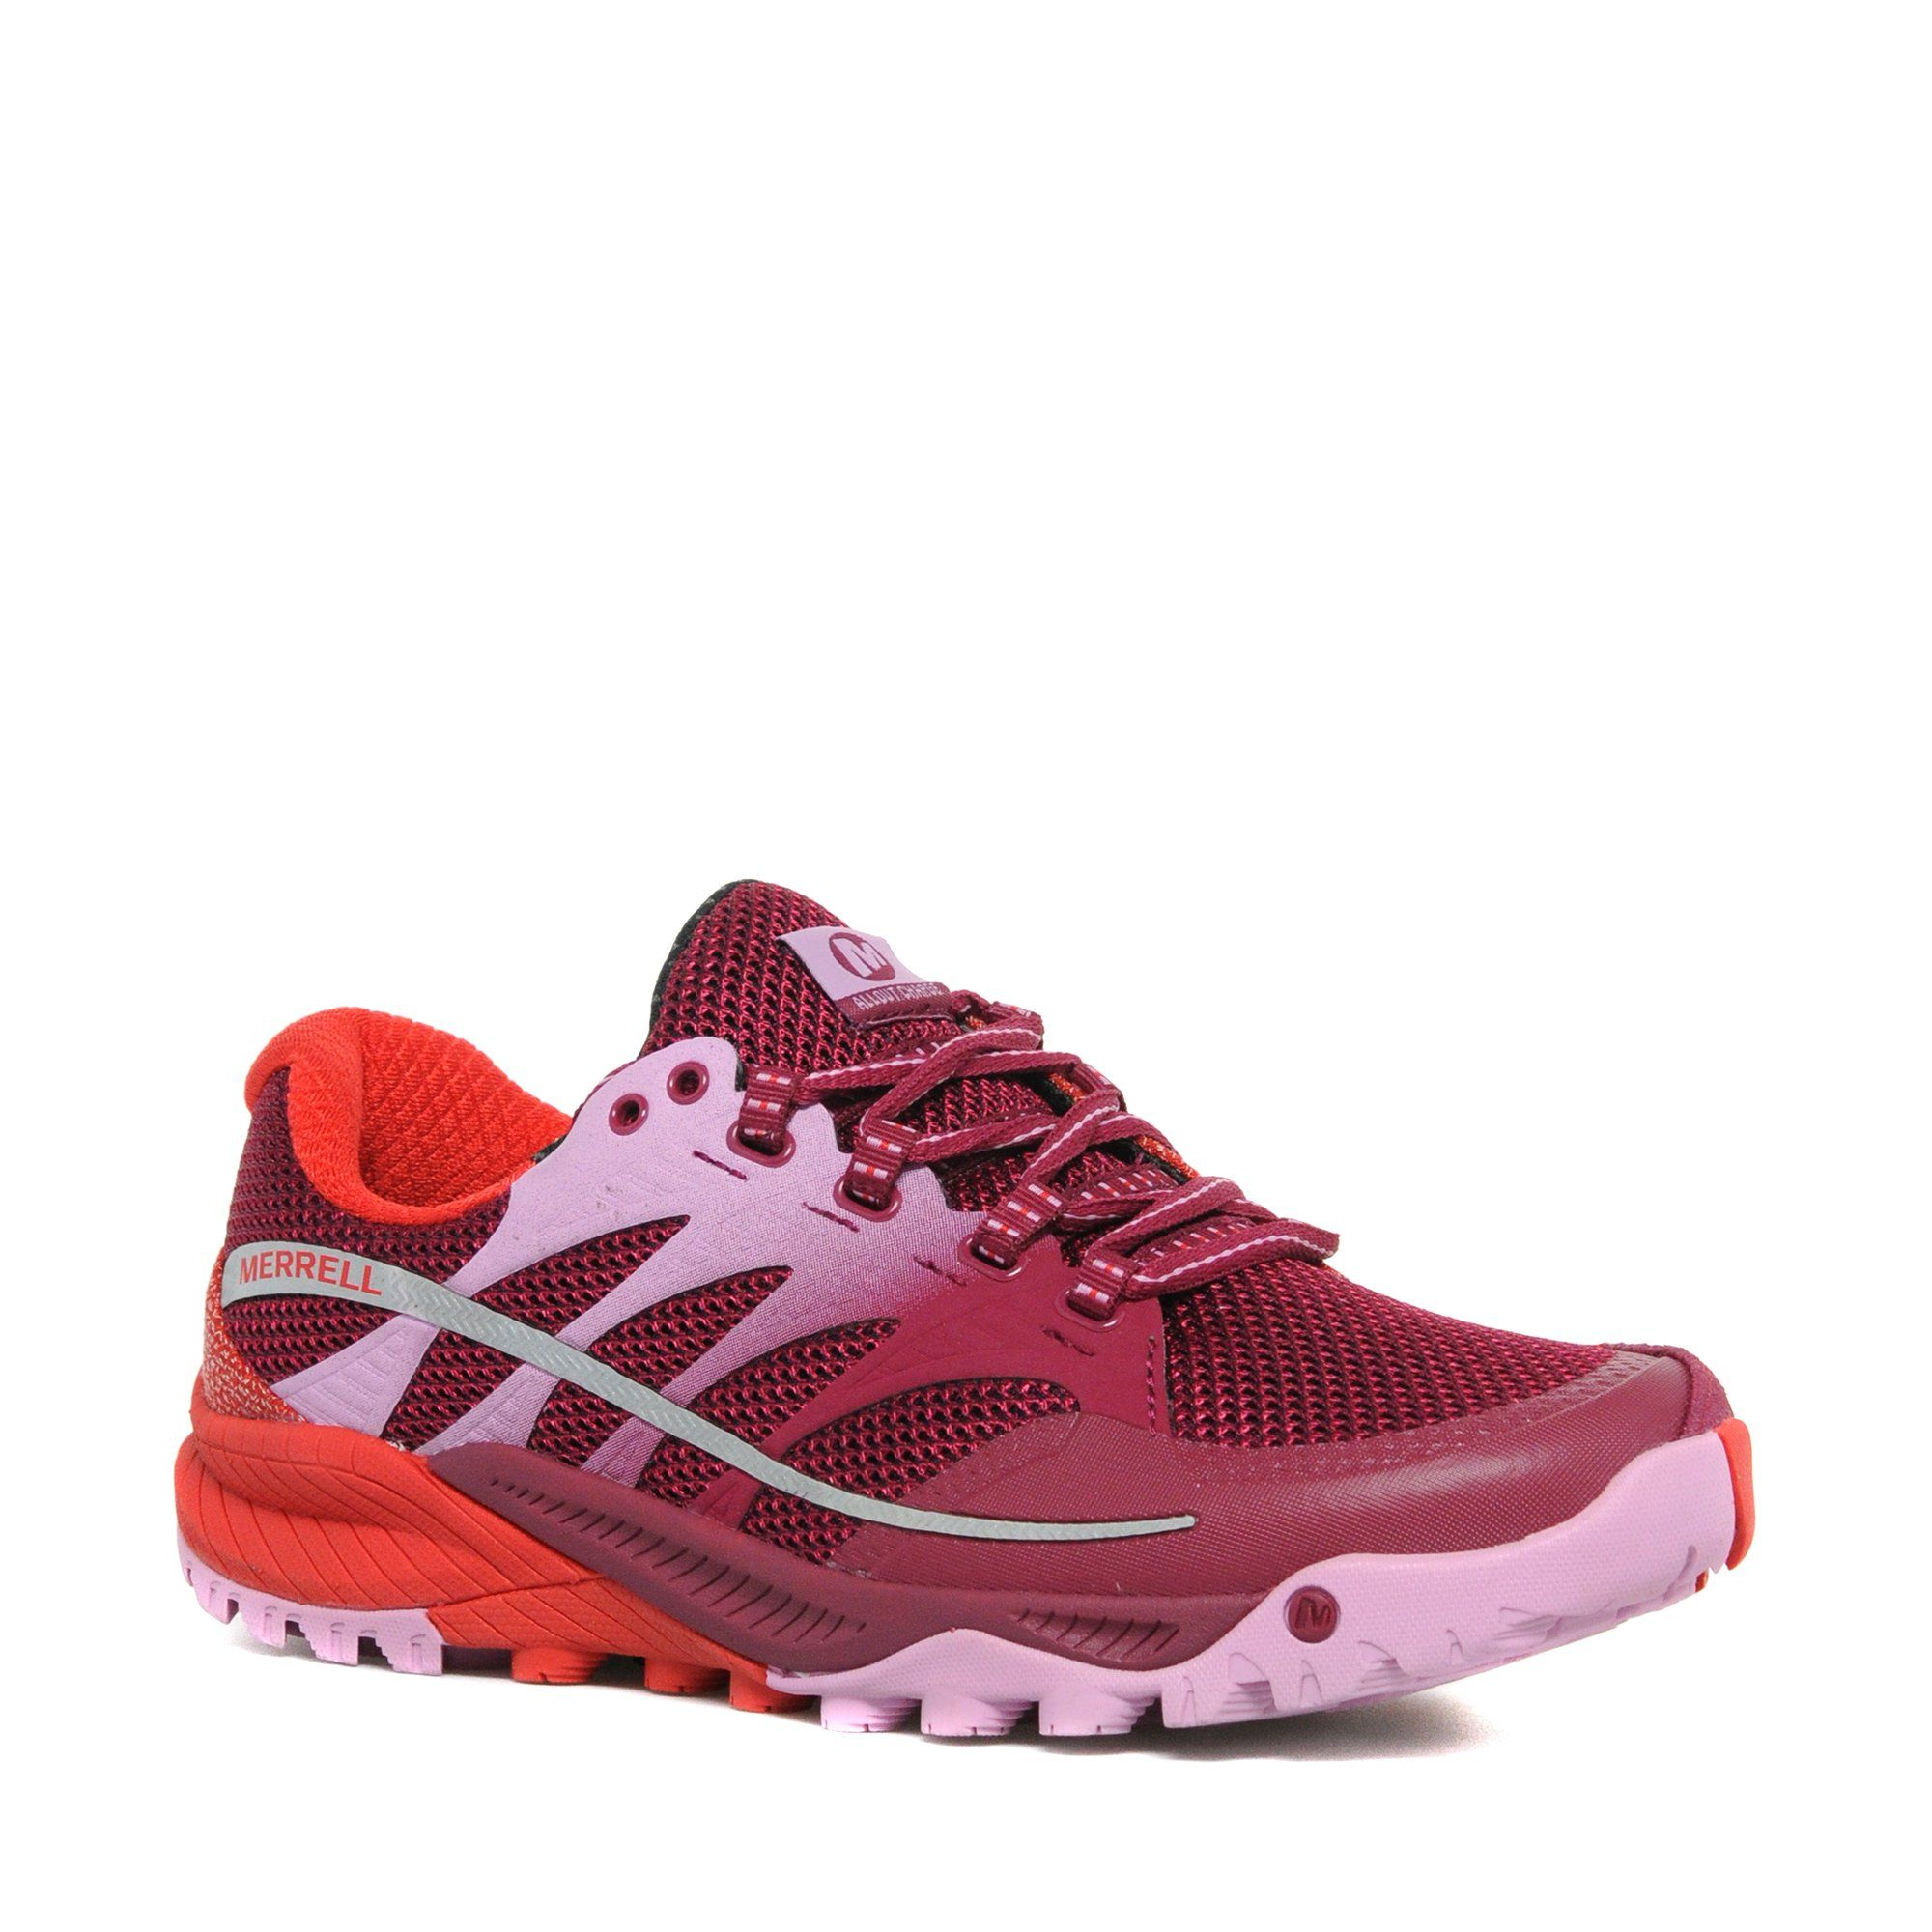 MERRELL Women's All Out Charge Shoes